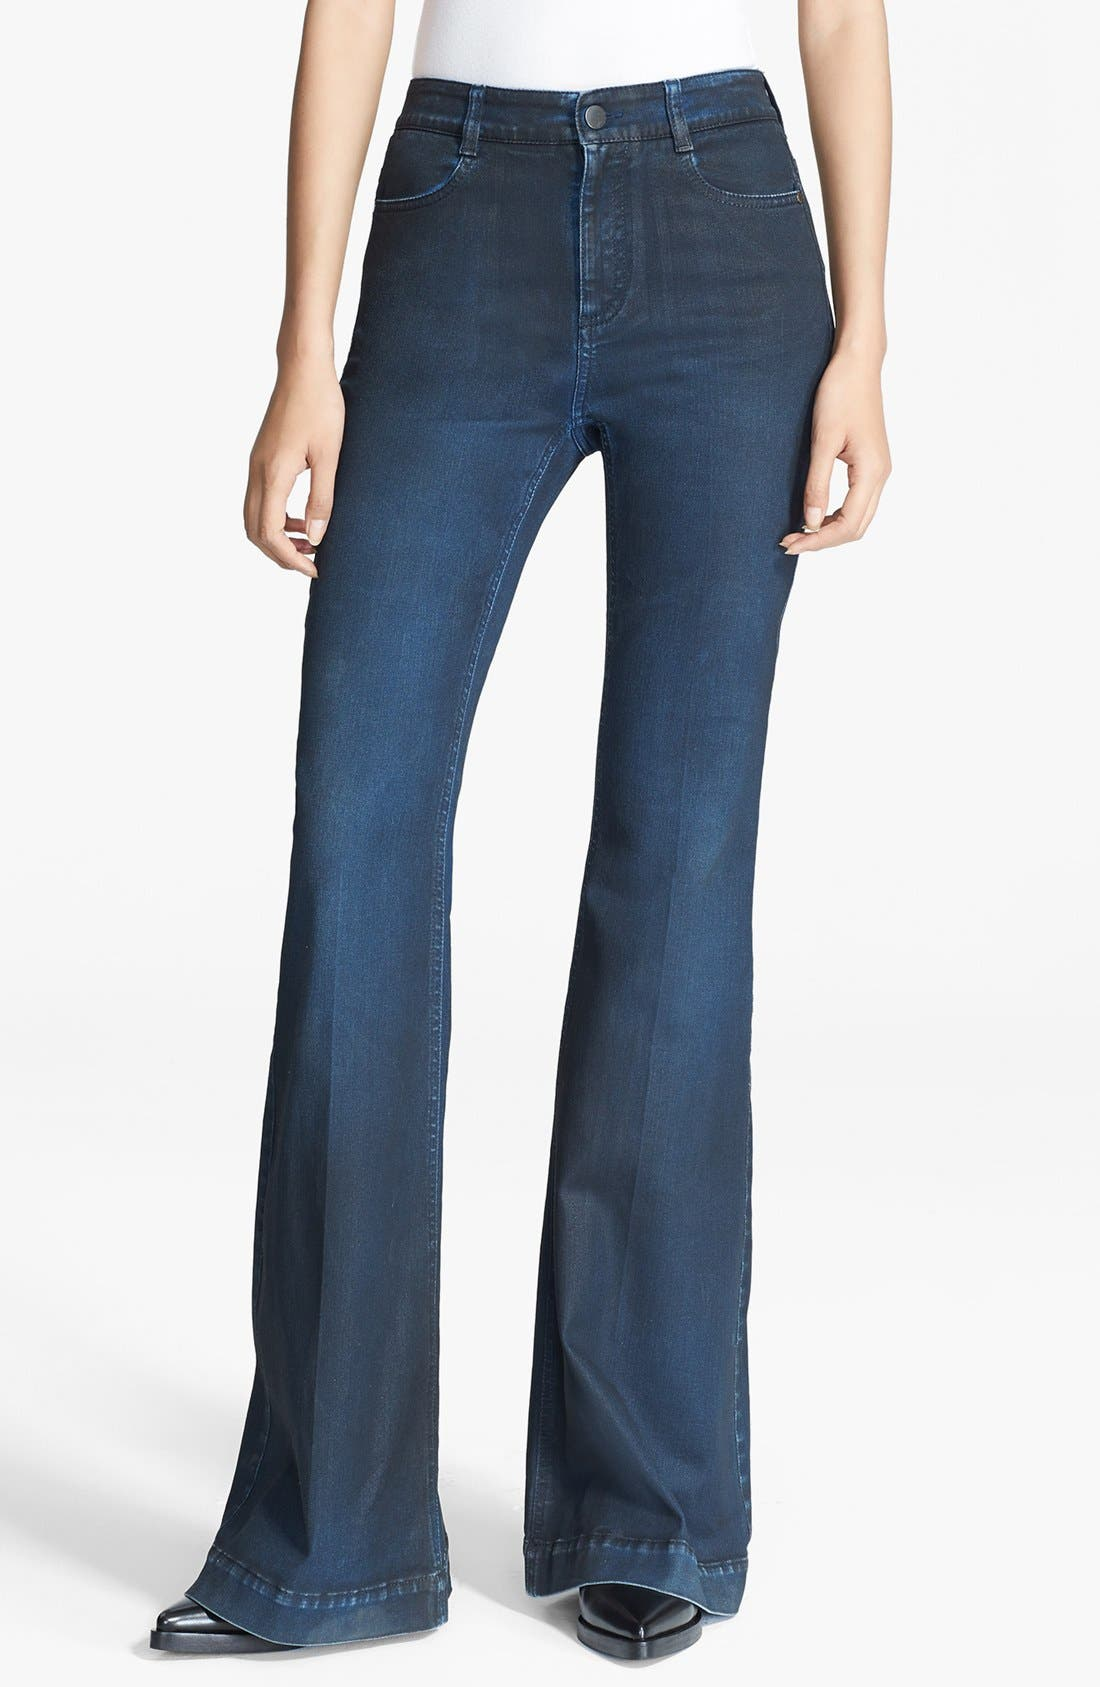 Alternate Image 1 Selected - Stella McCartney 'The 70's Flare' Jeans